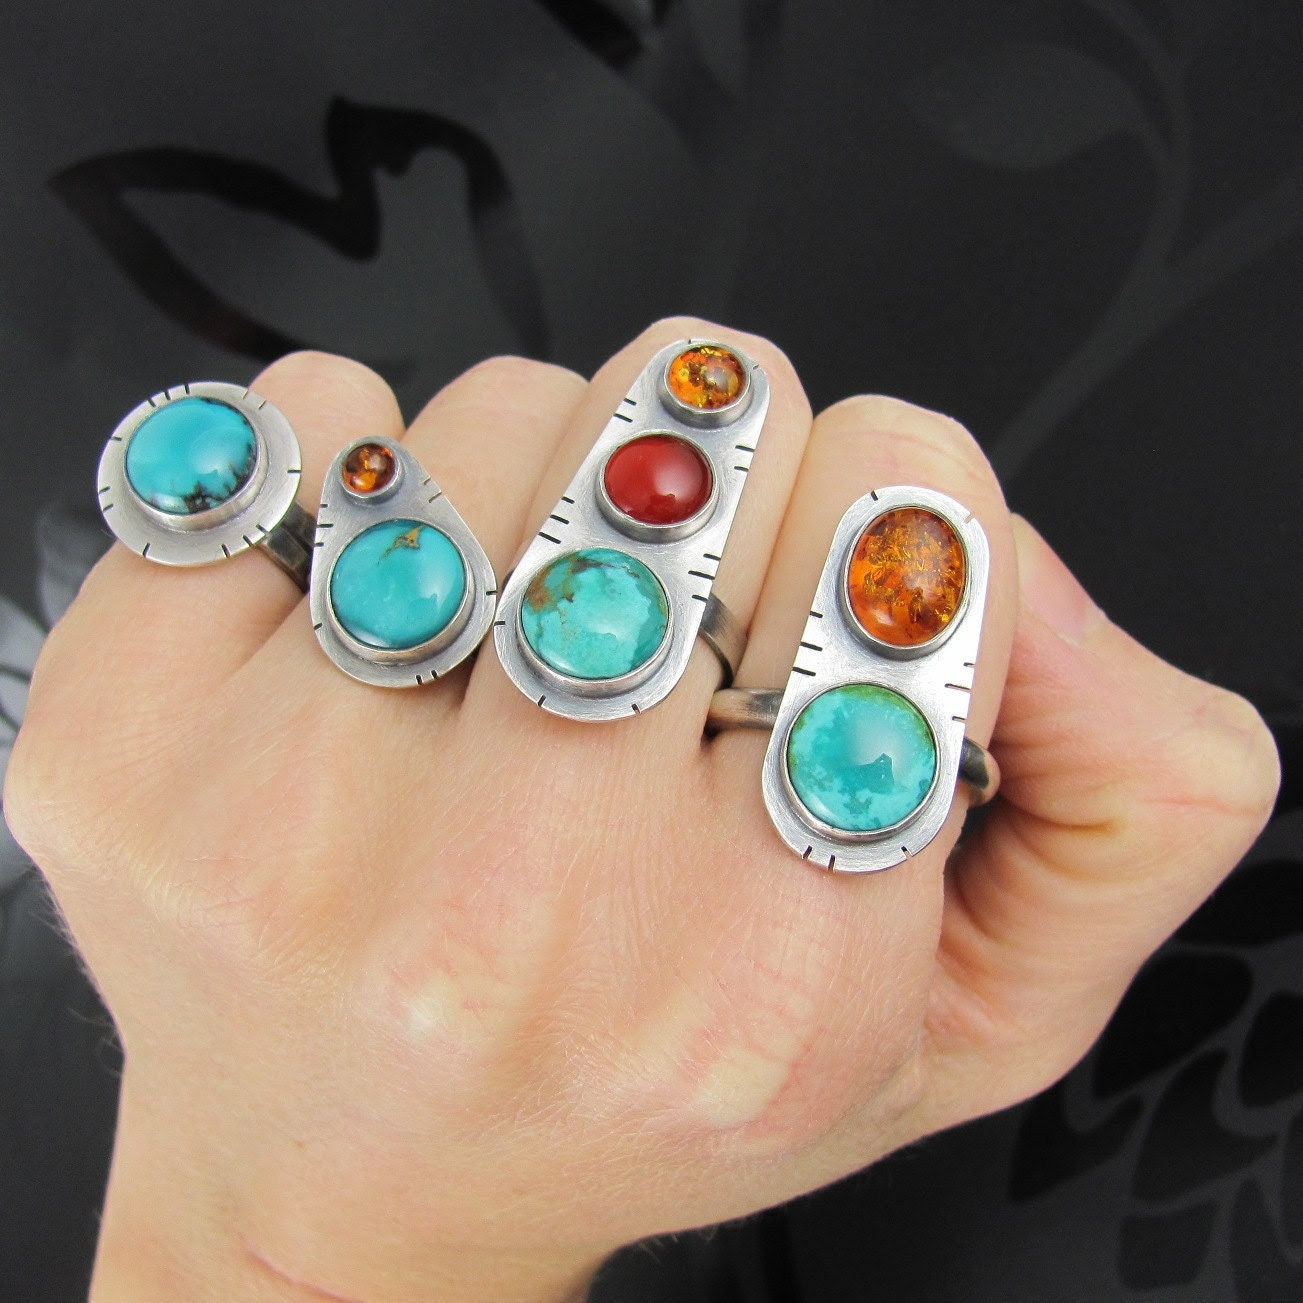 turquoise amber sterling silver ring - turquoise ring - amber ring - sterling silver ring - unique ring